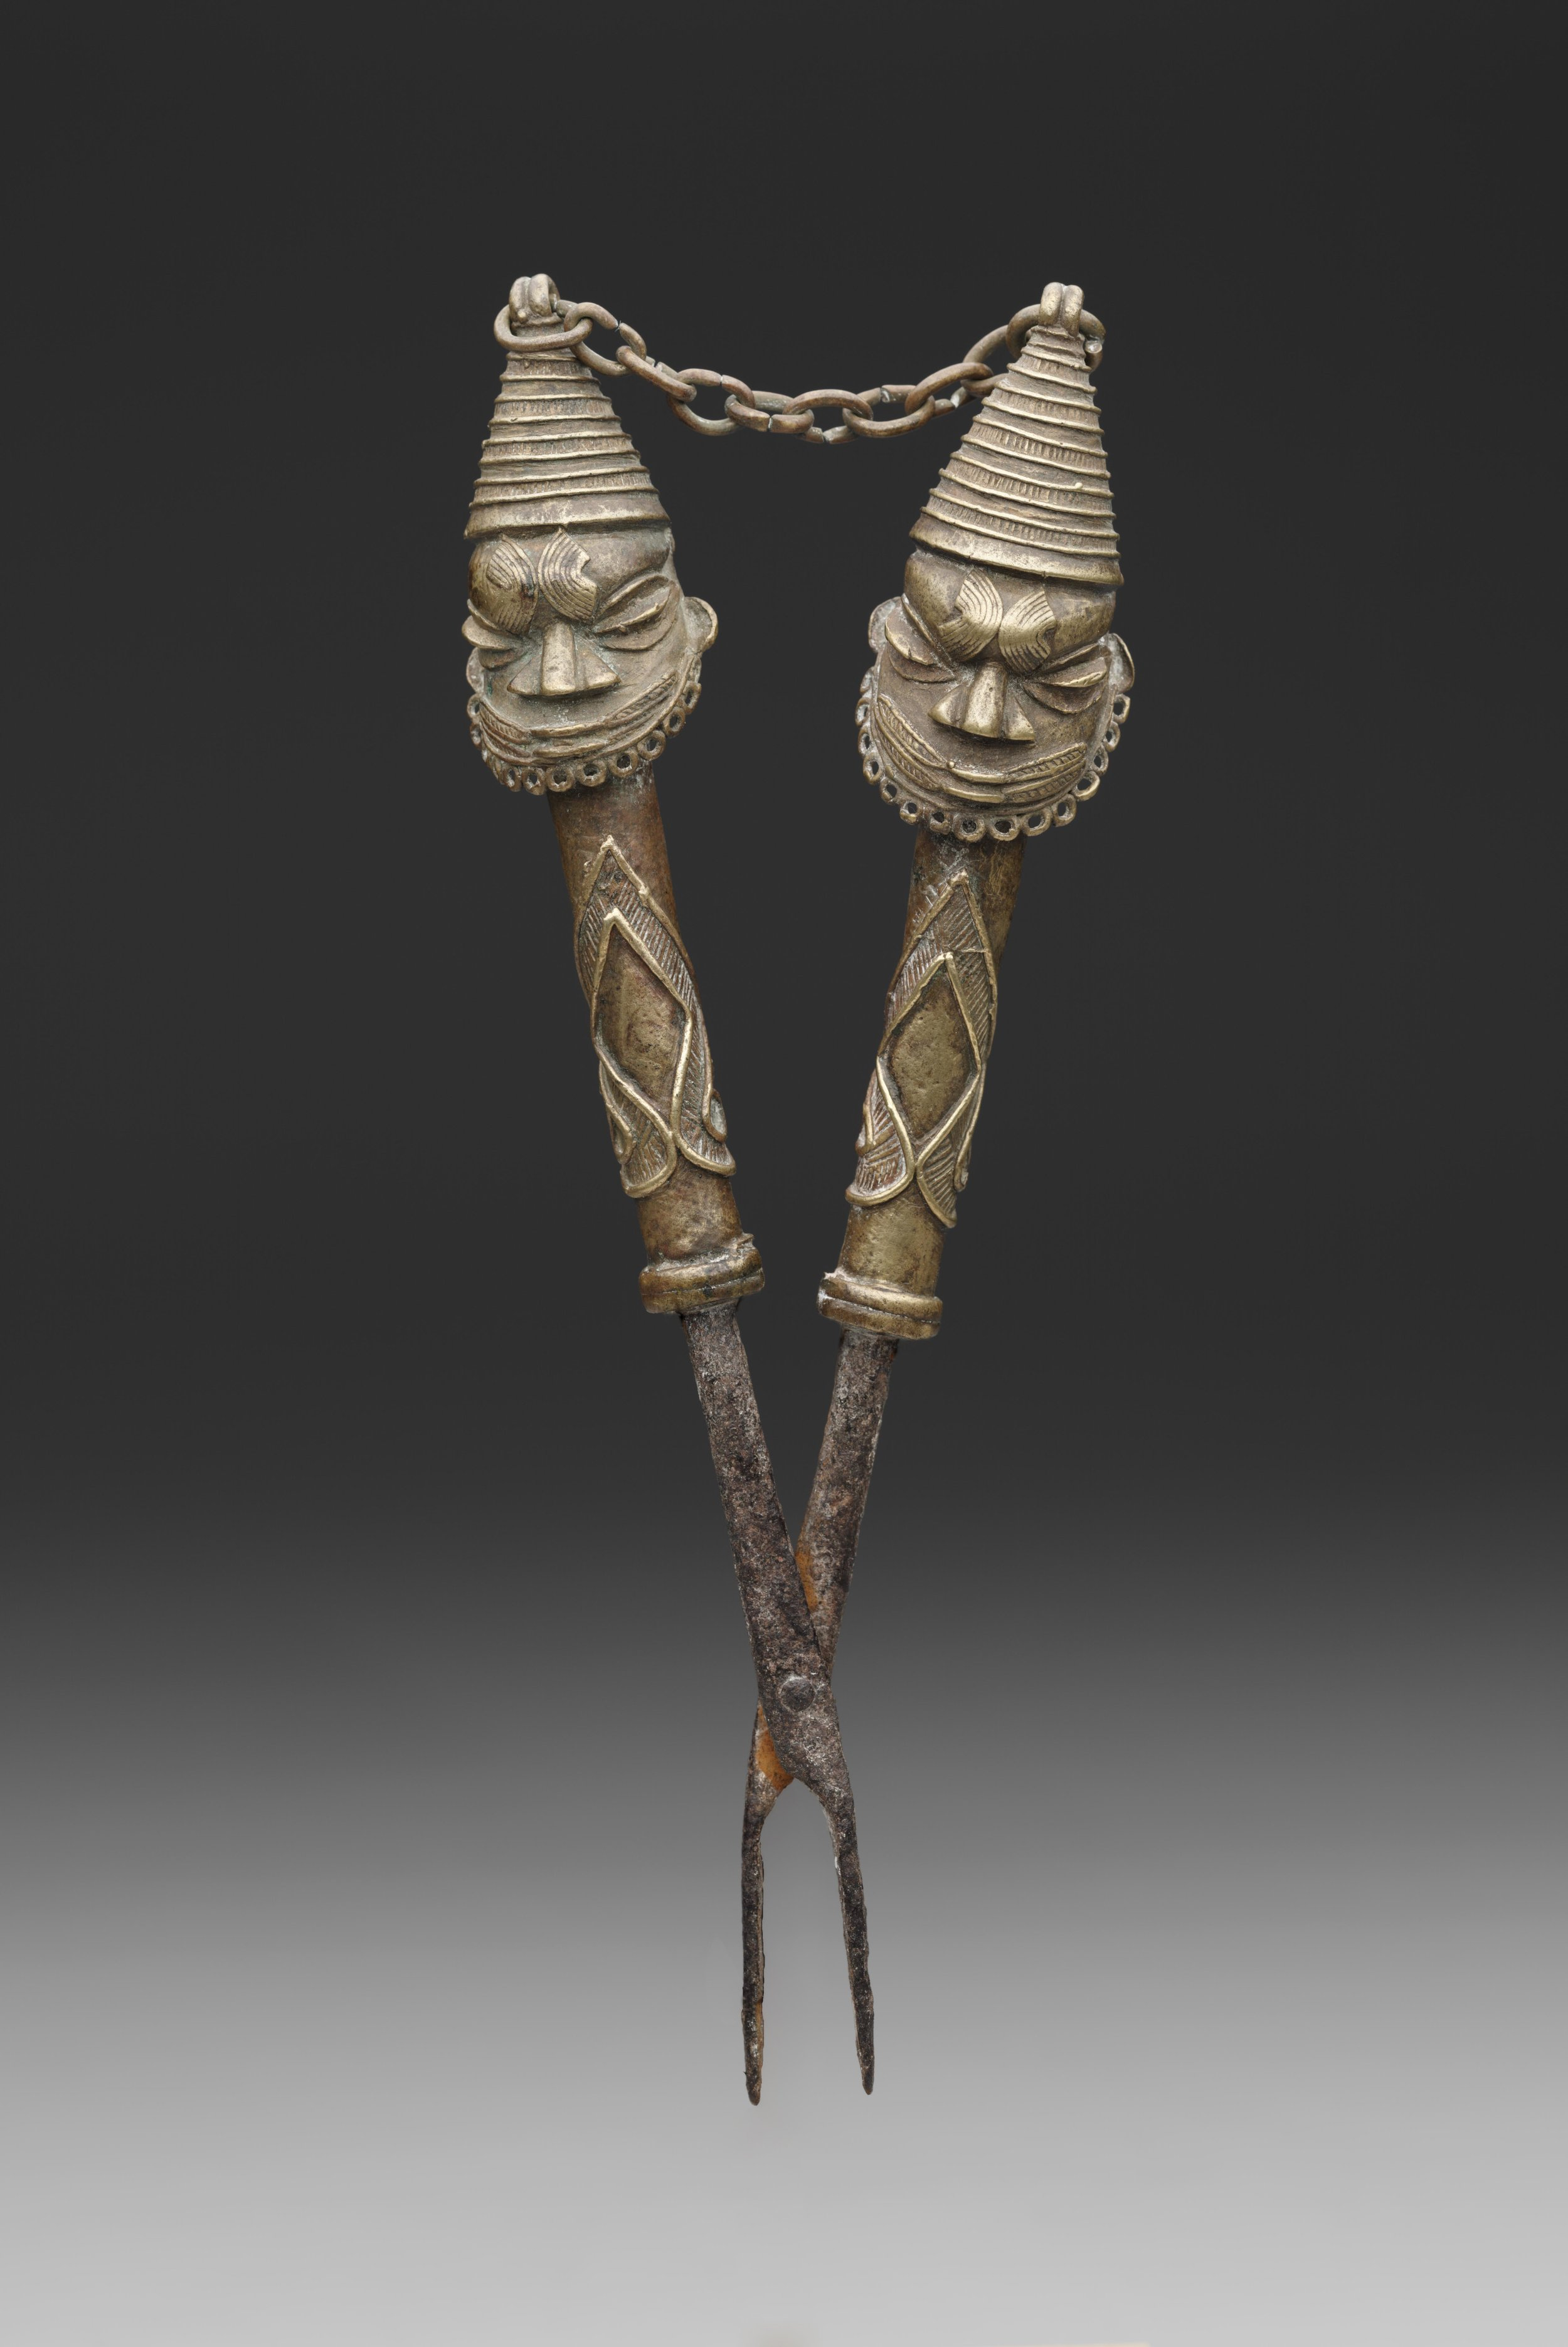 Artist unknown (Yorùbápeoples, Nigeria), figurated tongs for ÒṣùgbóSociety, early to mid-20th century, iron, copper alloy (cast).Dallas Museum of Art, 2005.92, Gift of George and Sidney Perutz in honor of Roslyn A. Walker